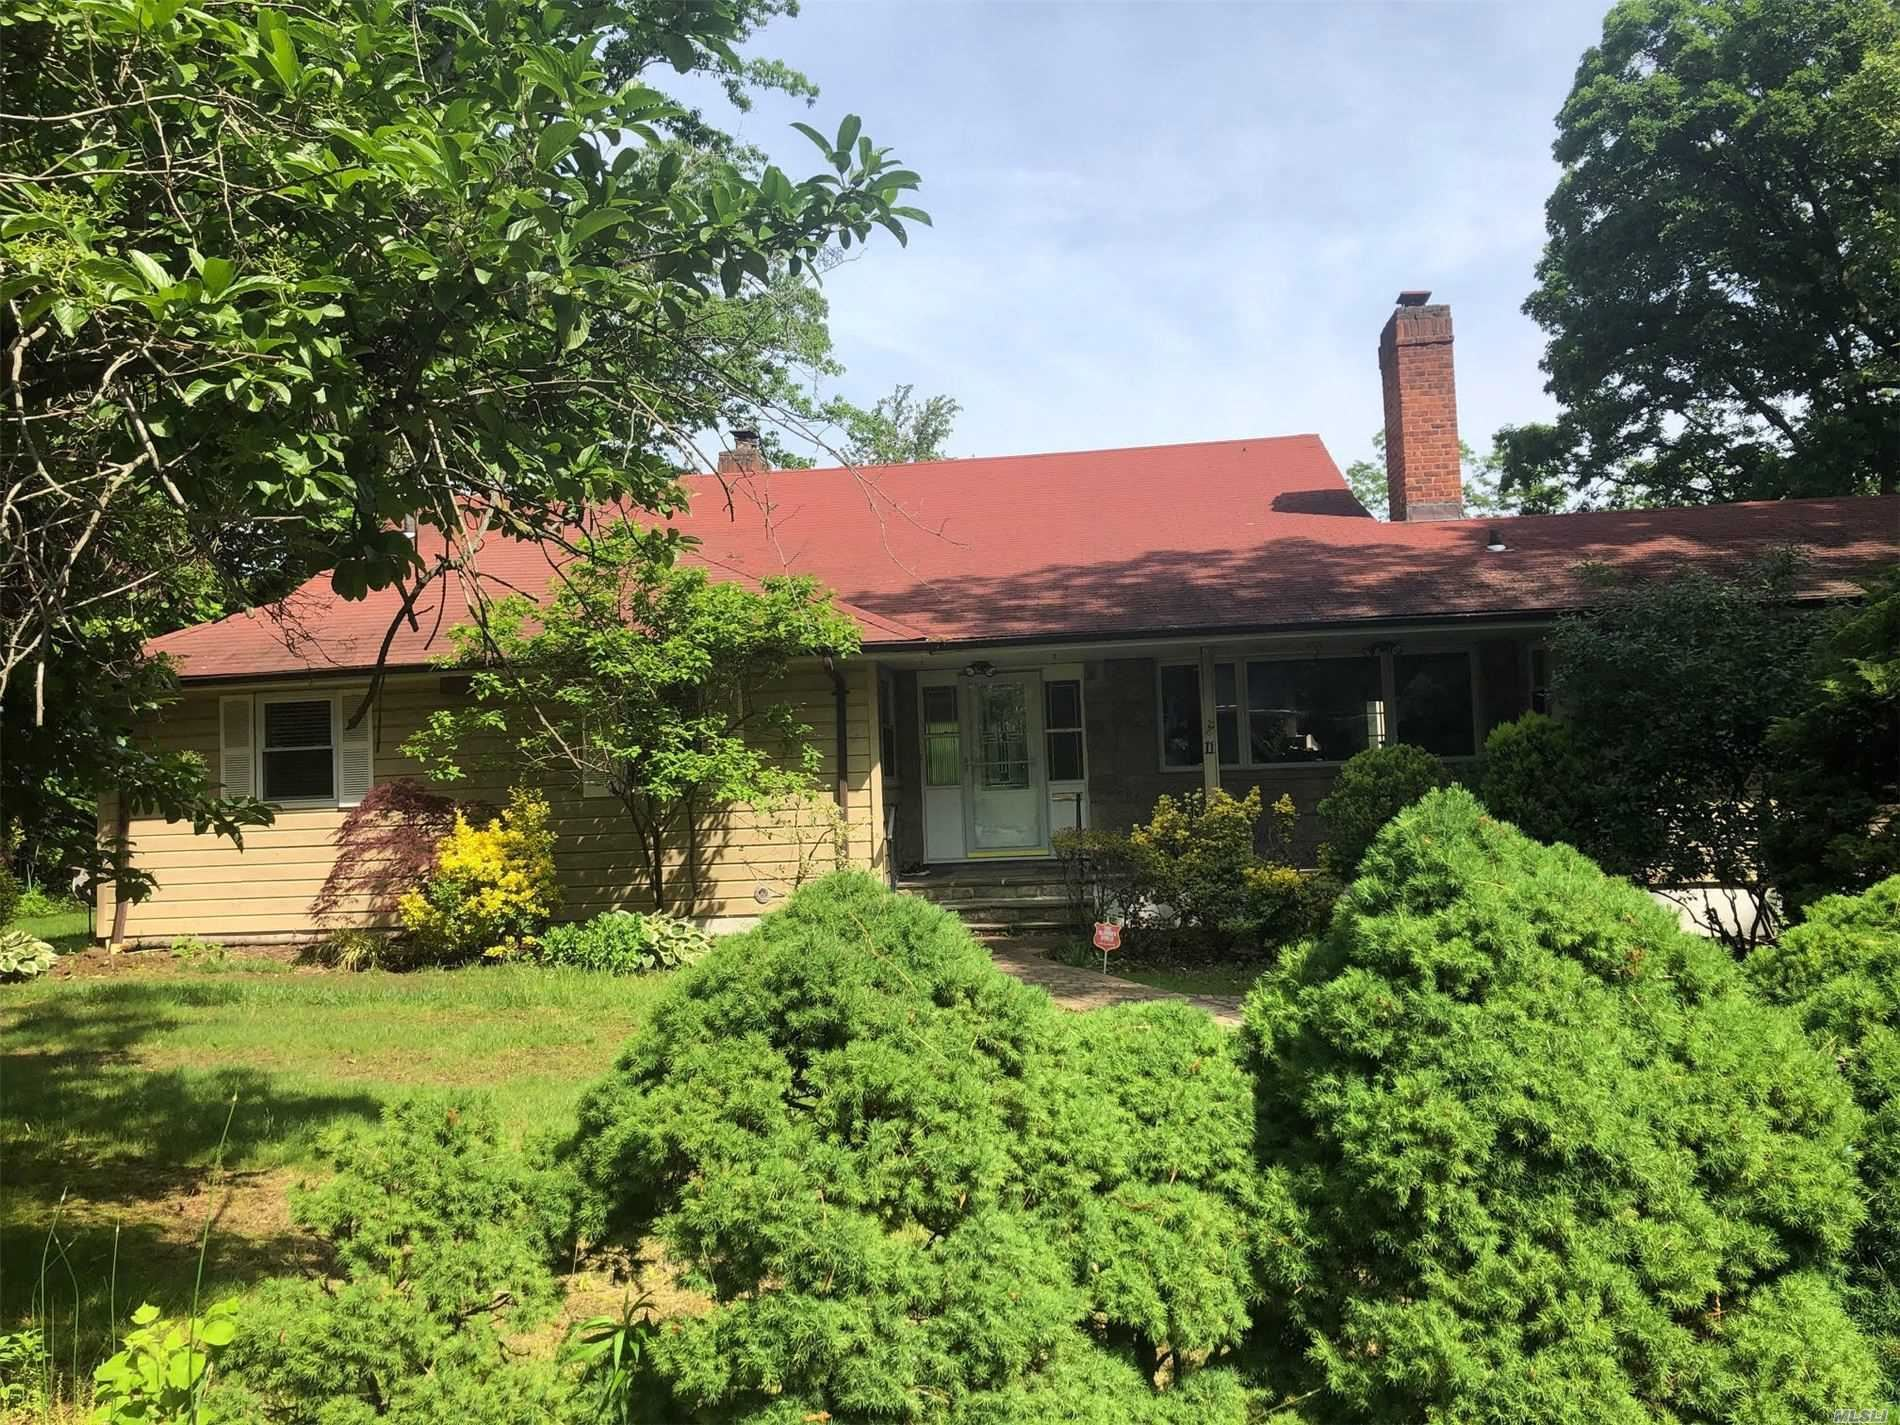 11 Saint George Road, Great Neck, NY 11021 - MLS#: 3219564